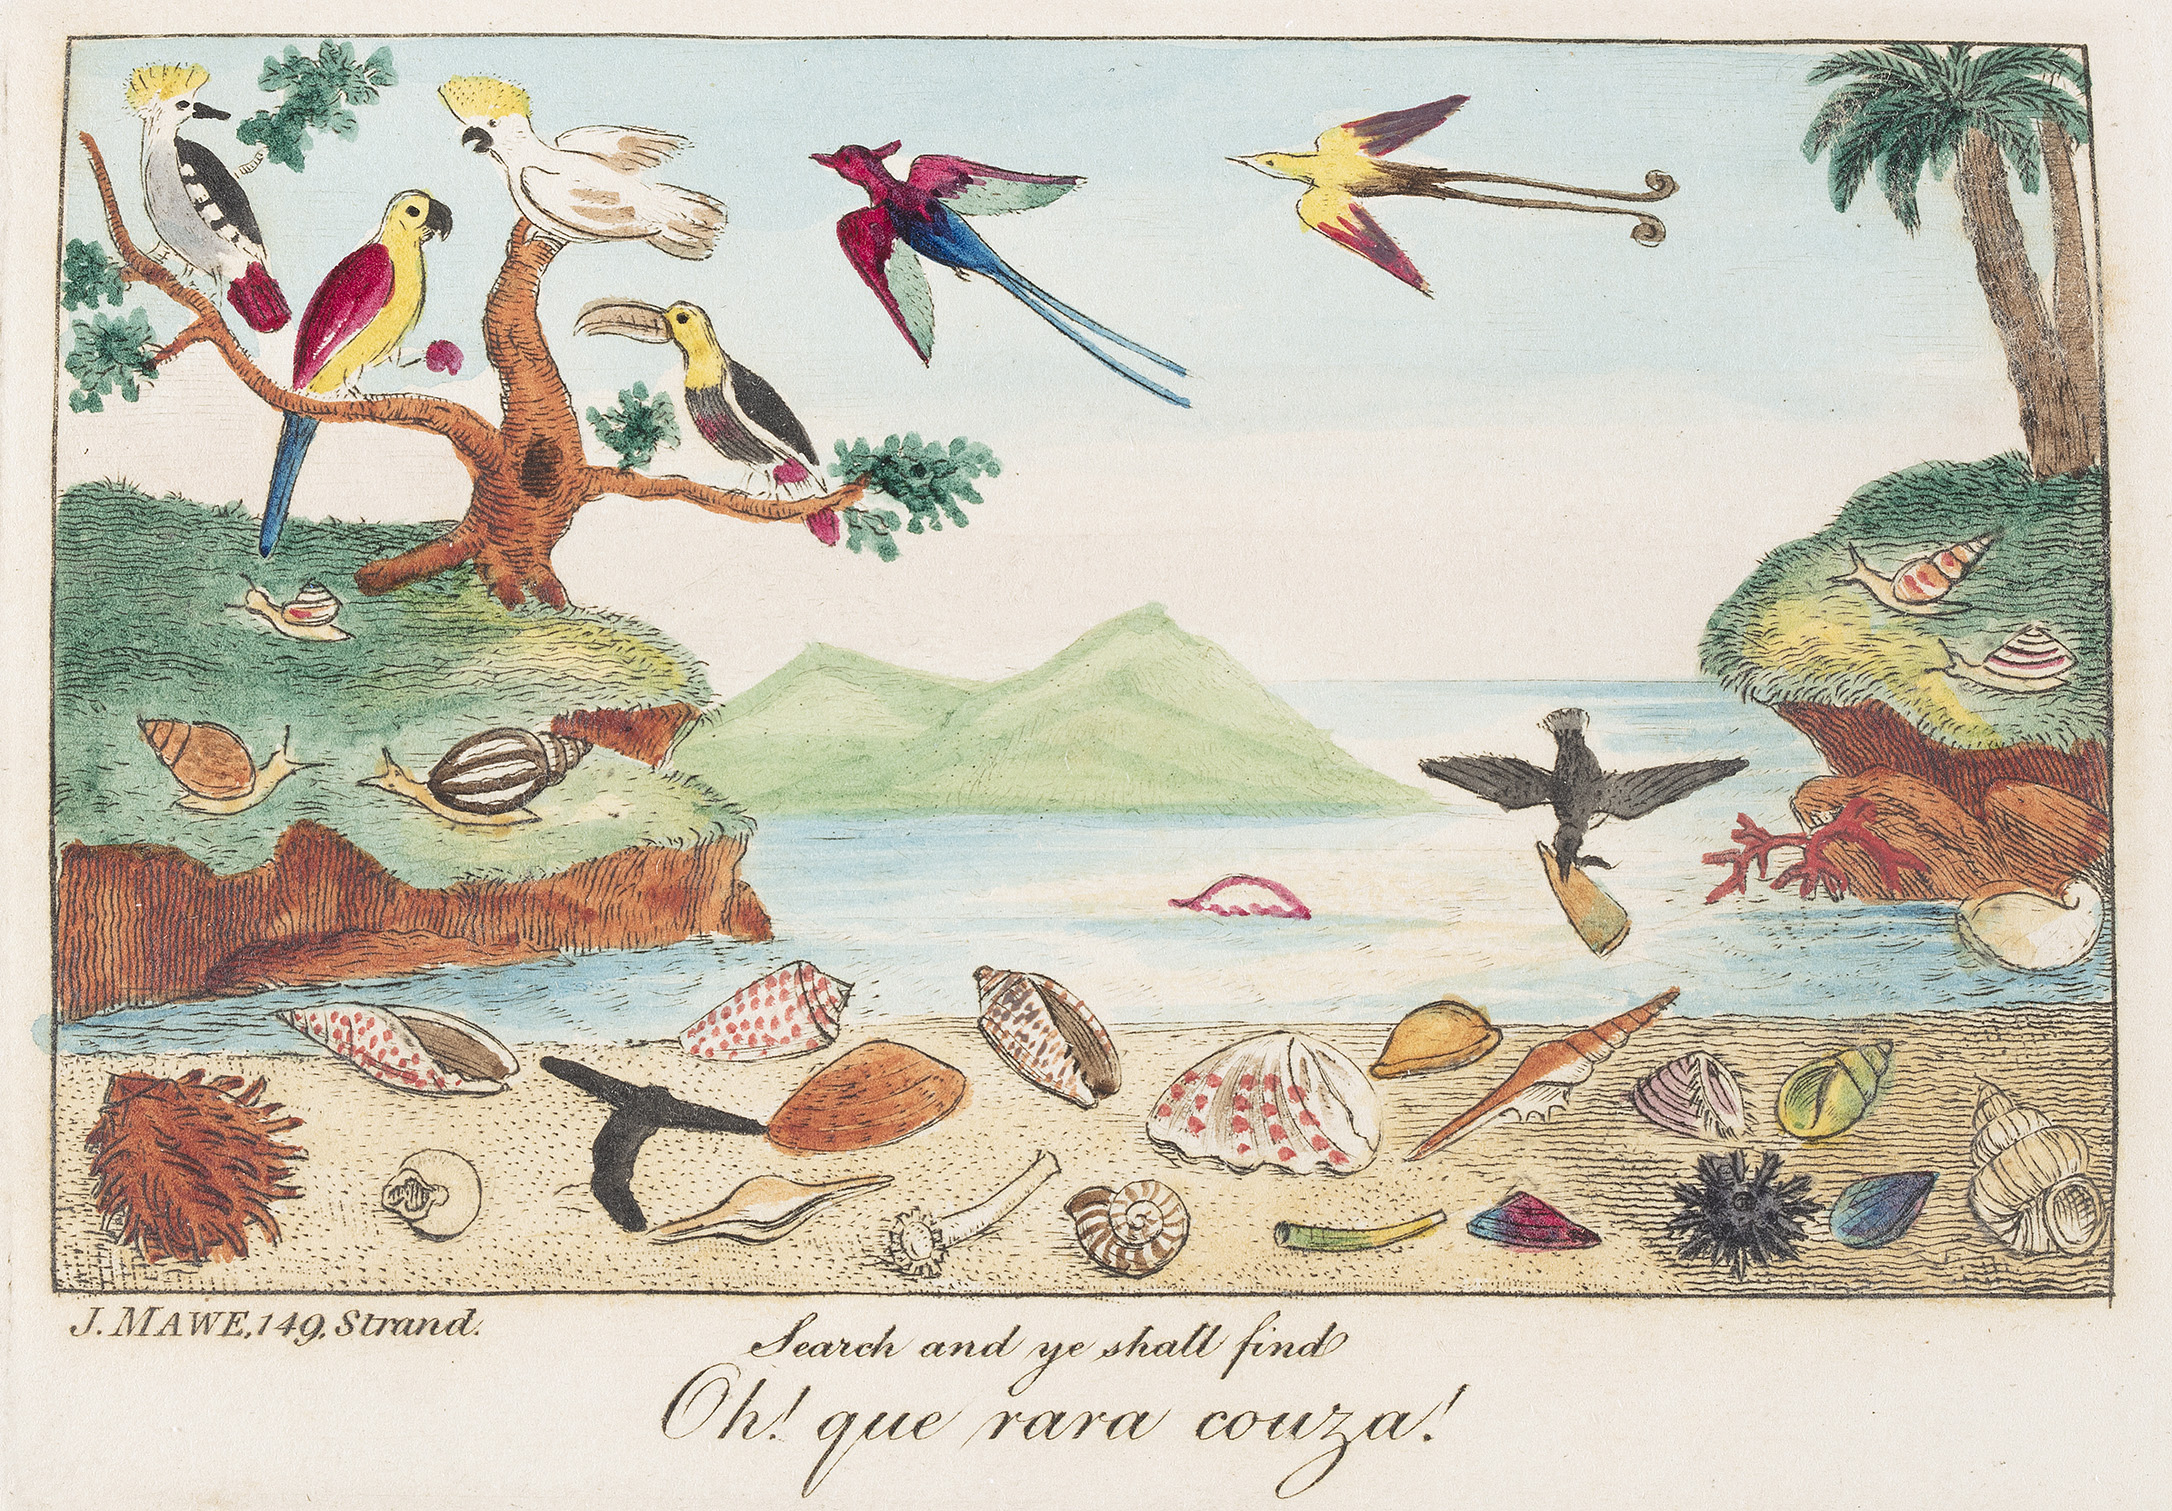 Illustration from The Voyager's Companion or Shell Collector's Pilot, 1825, by J Mawe